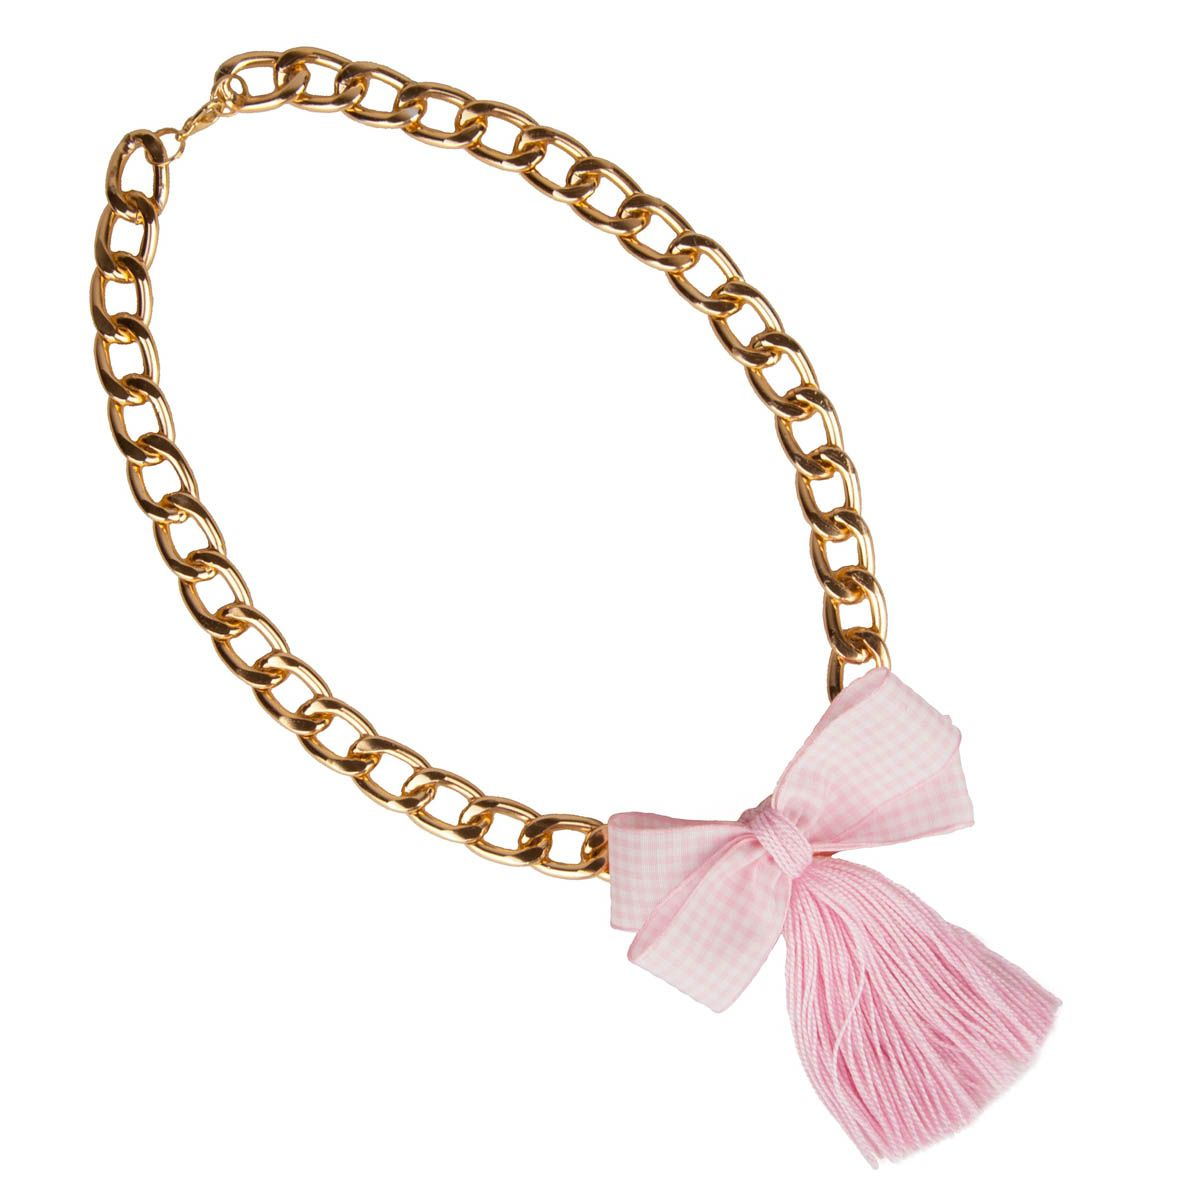 Maria Graor Artisanal Necklace in Gold